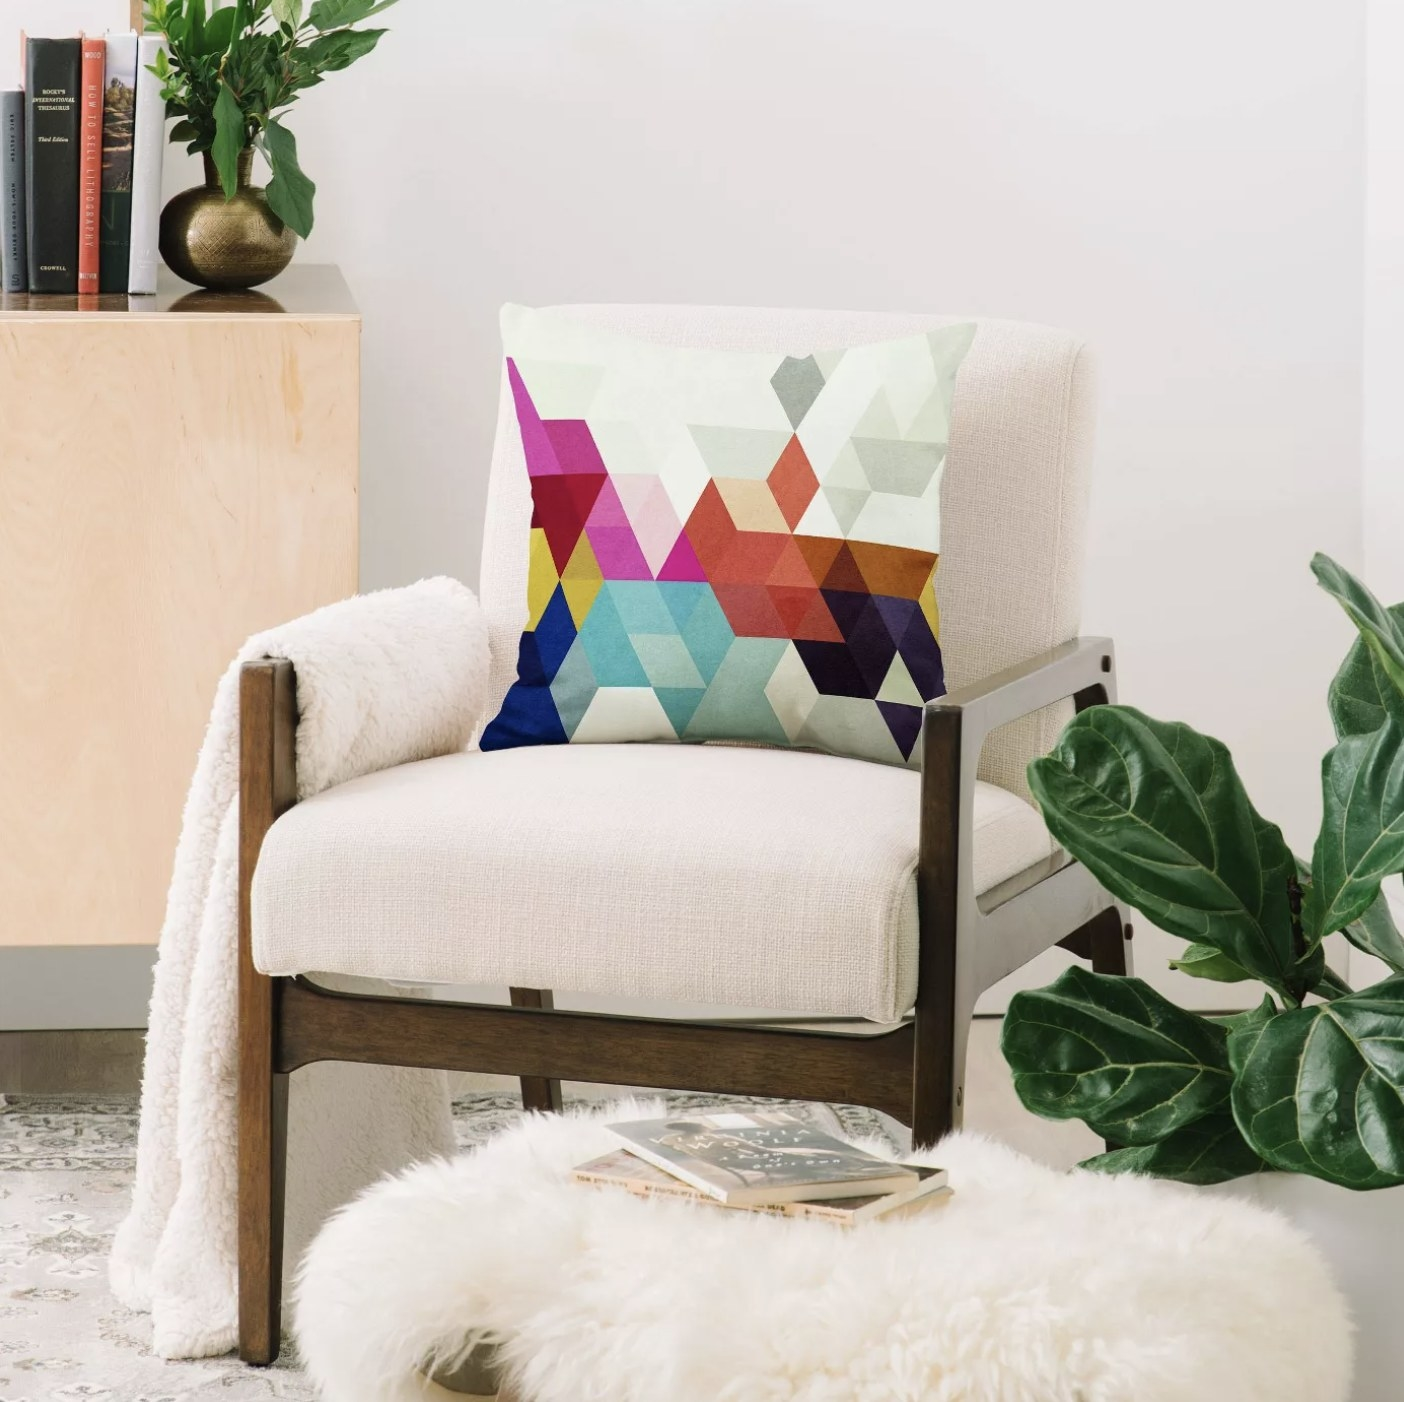 The geometric-patterned throw pillow